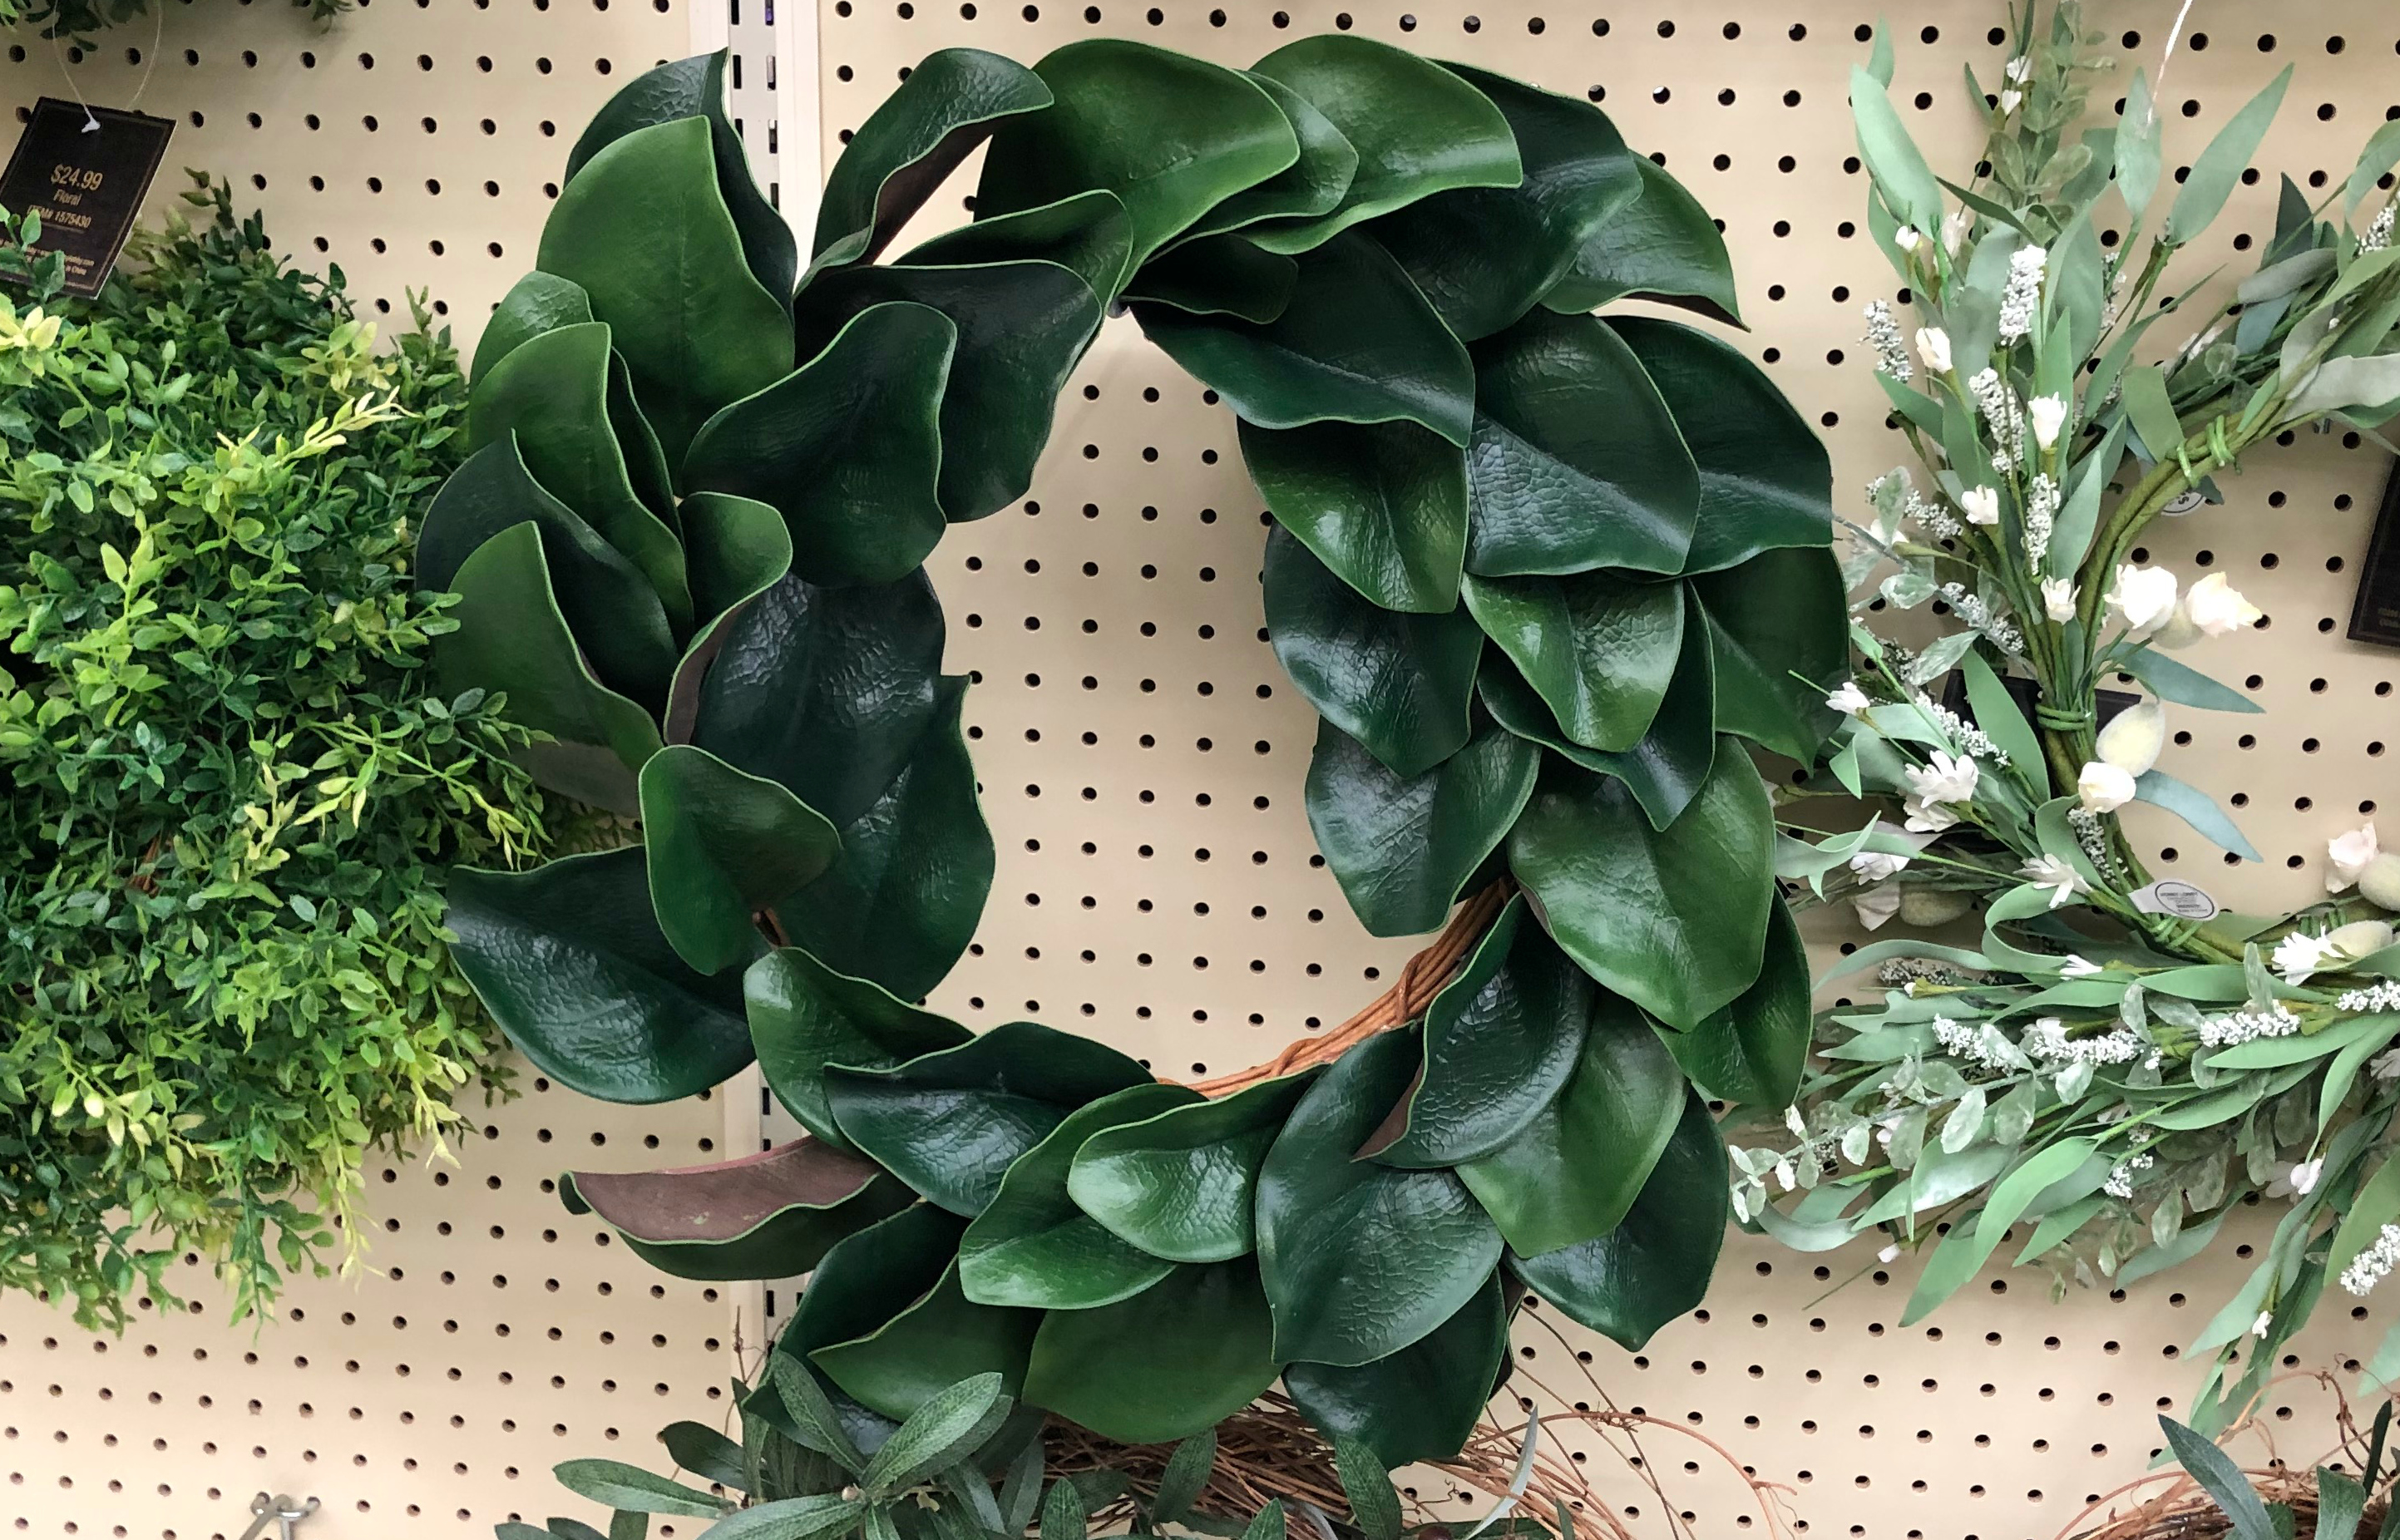 Hobby Lobby carries one of our Magnolia Wreath frugal look-alikes